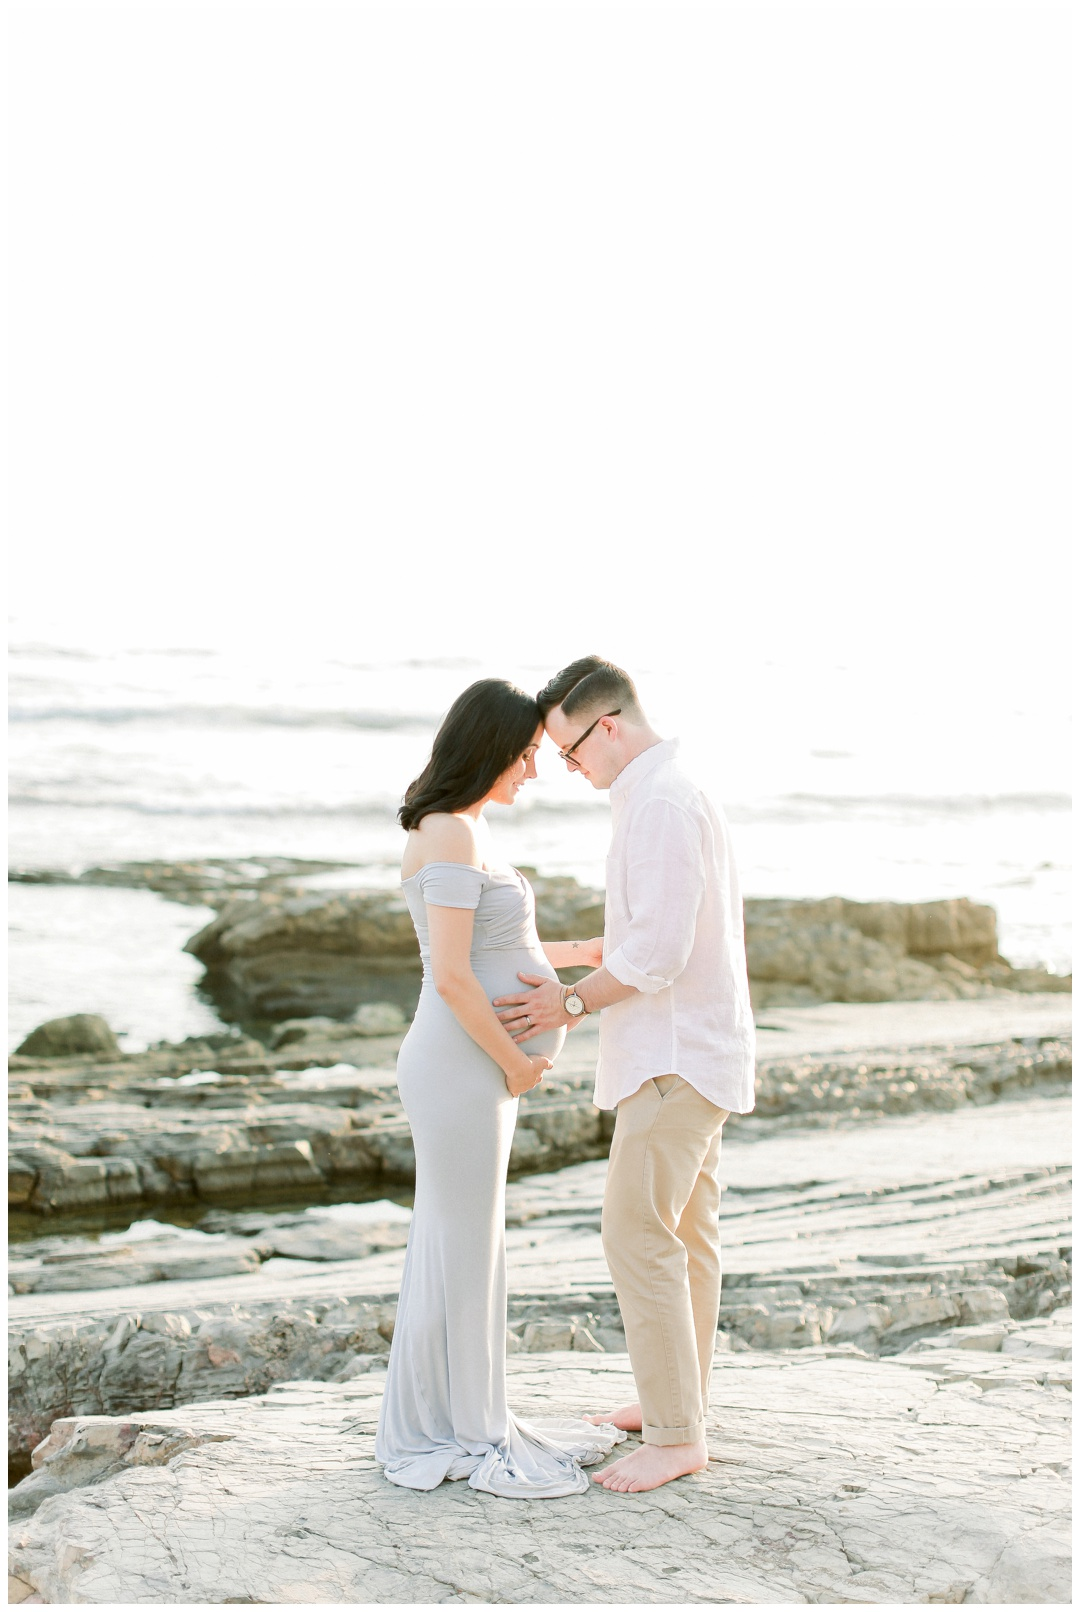 Newport_Beach_Maternity_Photographer_The_Merrill_Maternity_Session_Newport_Beach_Maternity_Photography_Orange_County_Photography_Cori_Kleckner_Photography_Orange_County_Beach_Photography_The_Ritz_Carlton_Laguna_Niguel_Resort_ Maternity_Session__1790.jpg